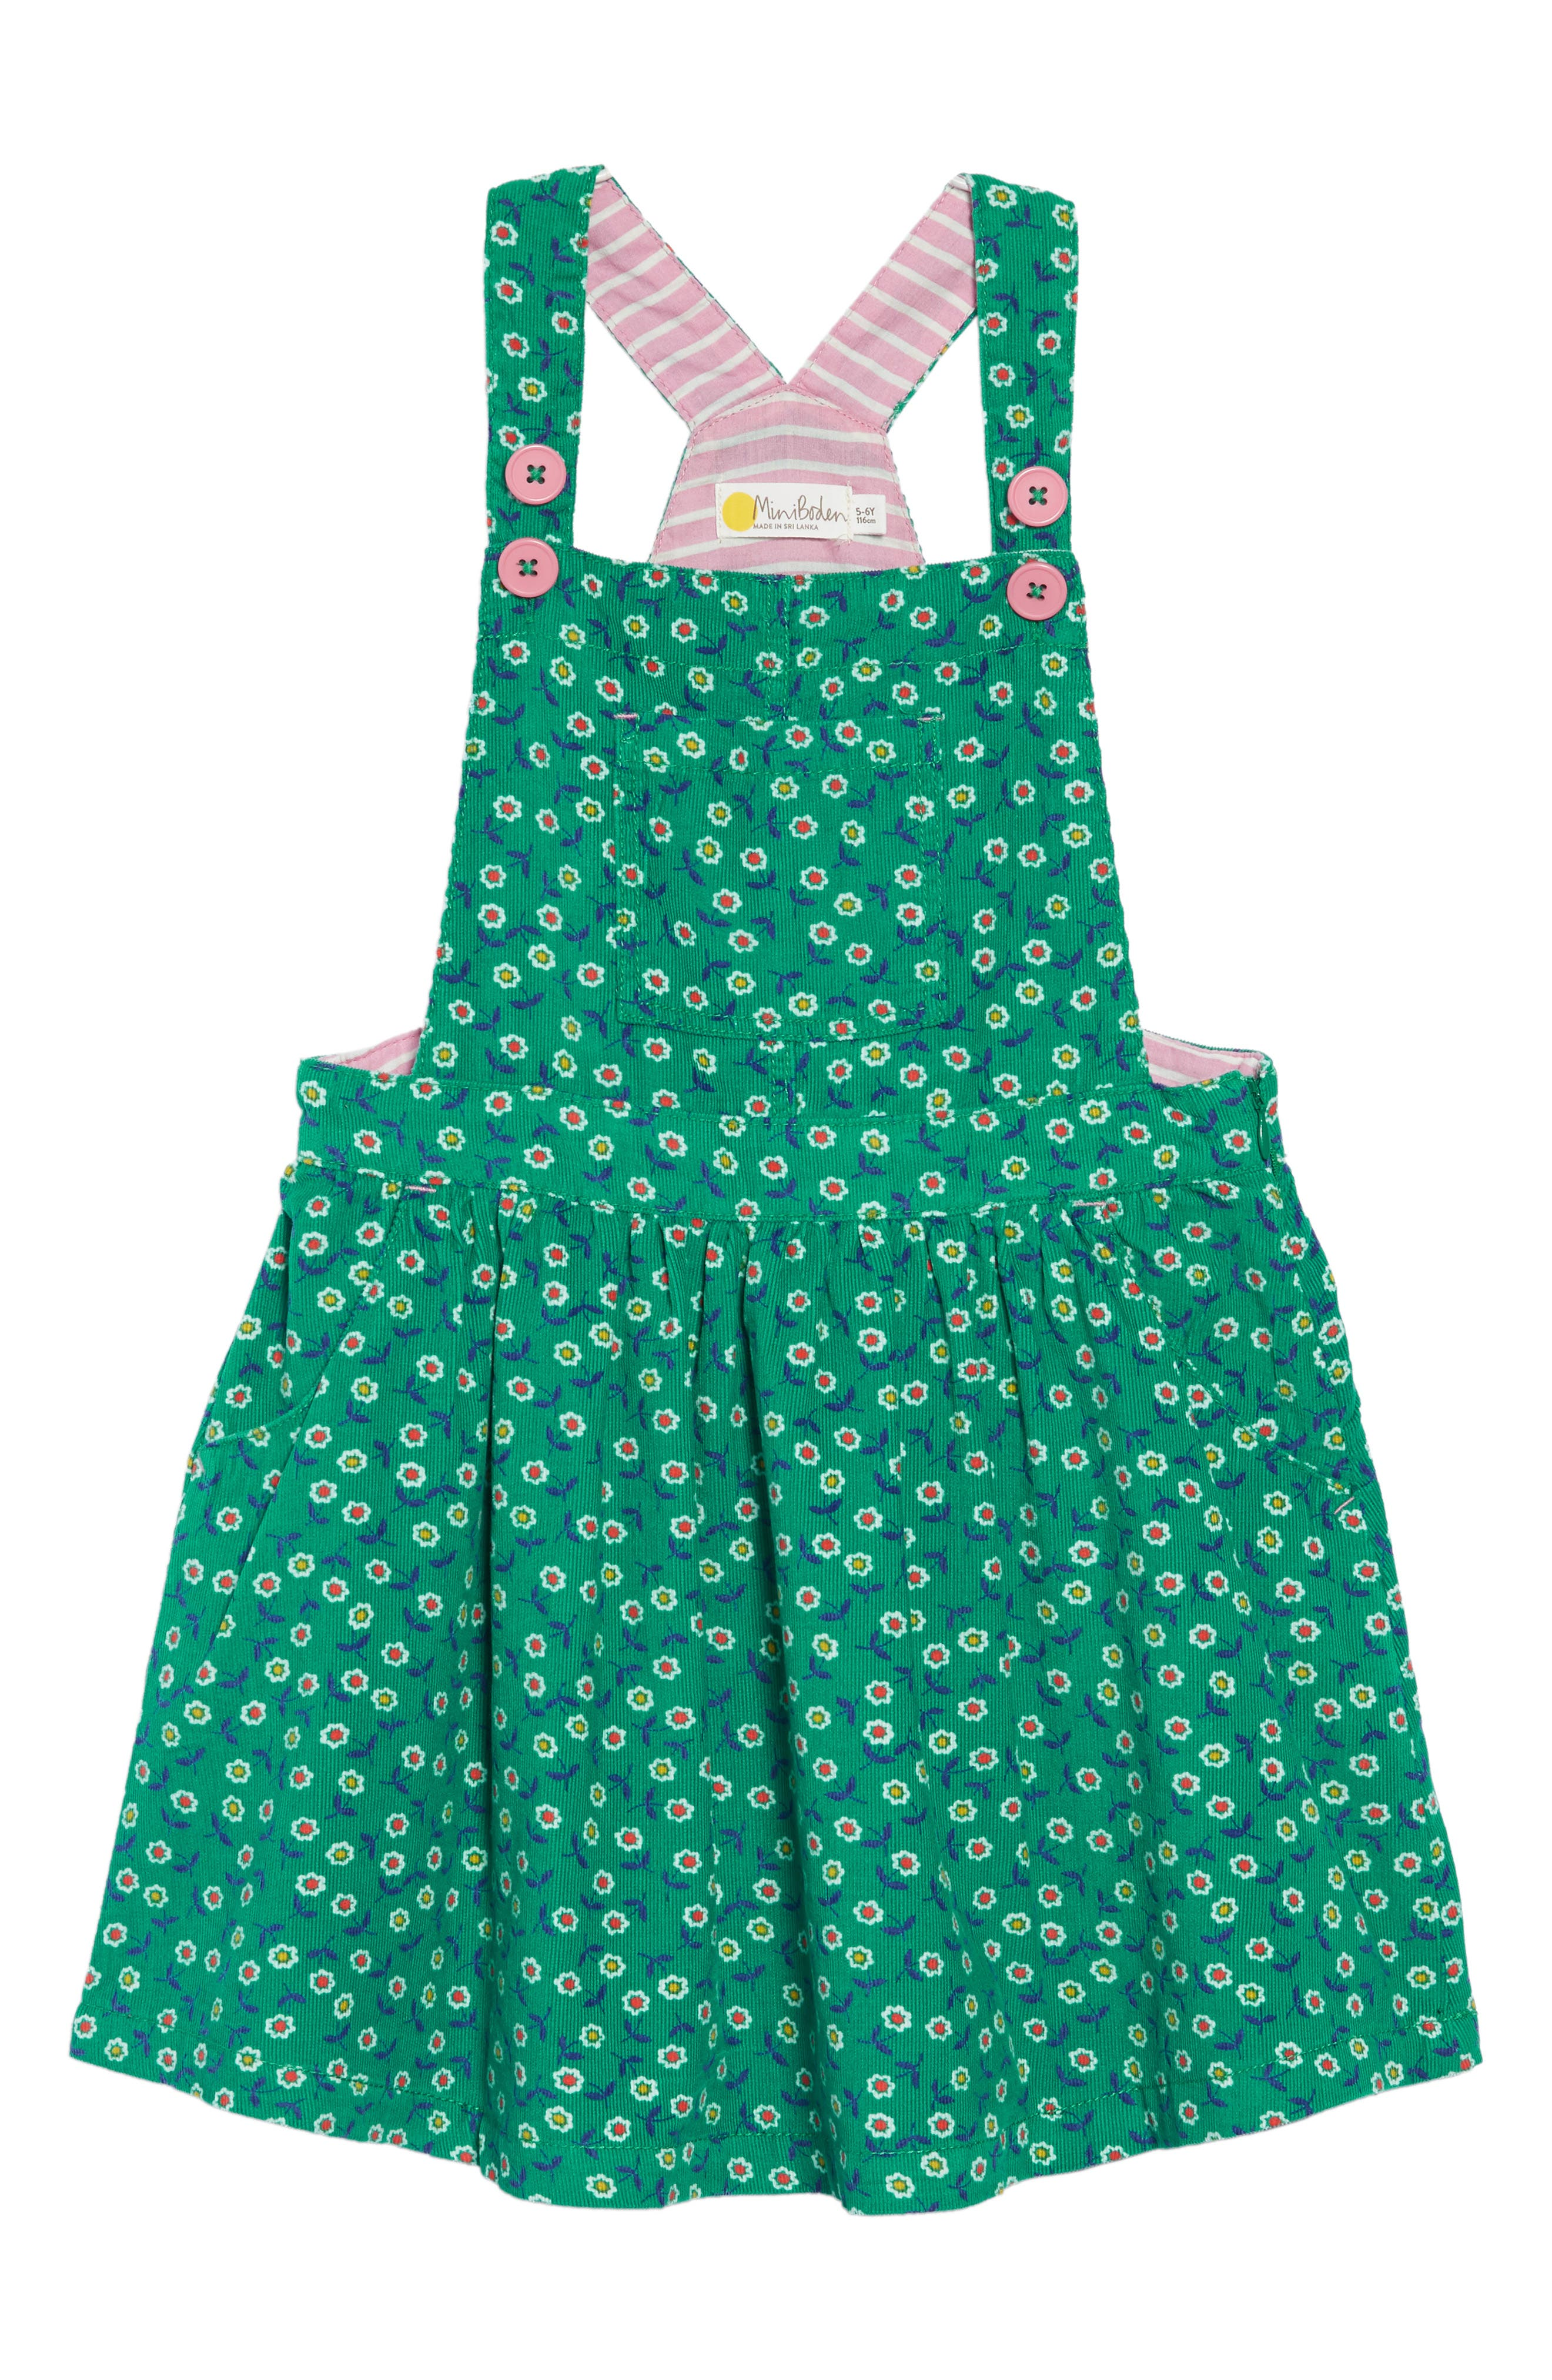 MINI BODEN,                             Dungaree Overall Dress,                             Main thumbnail 1, color,                             315